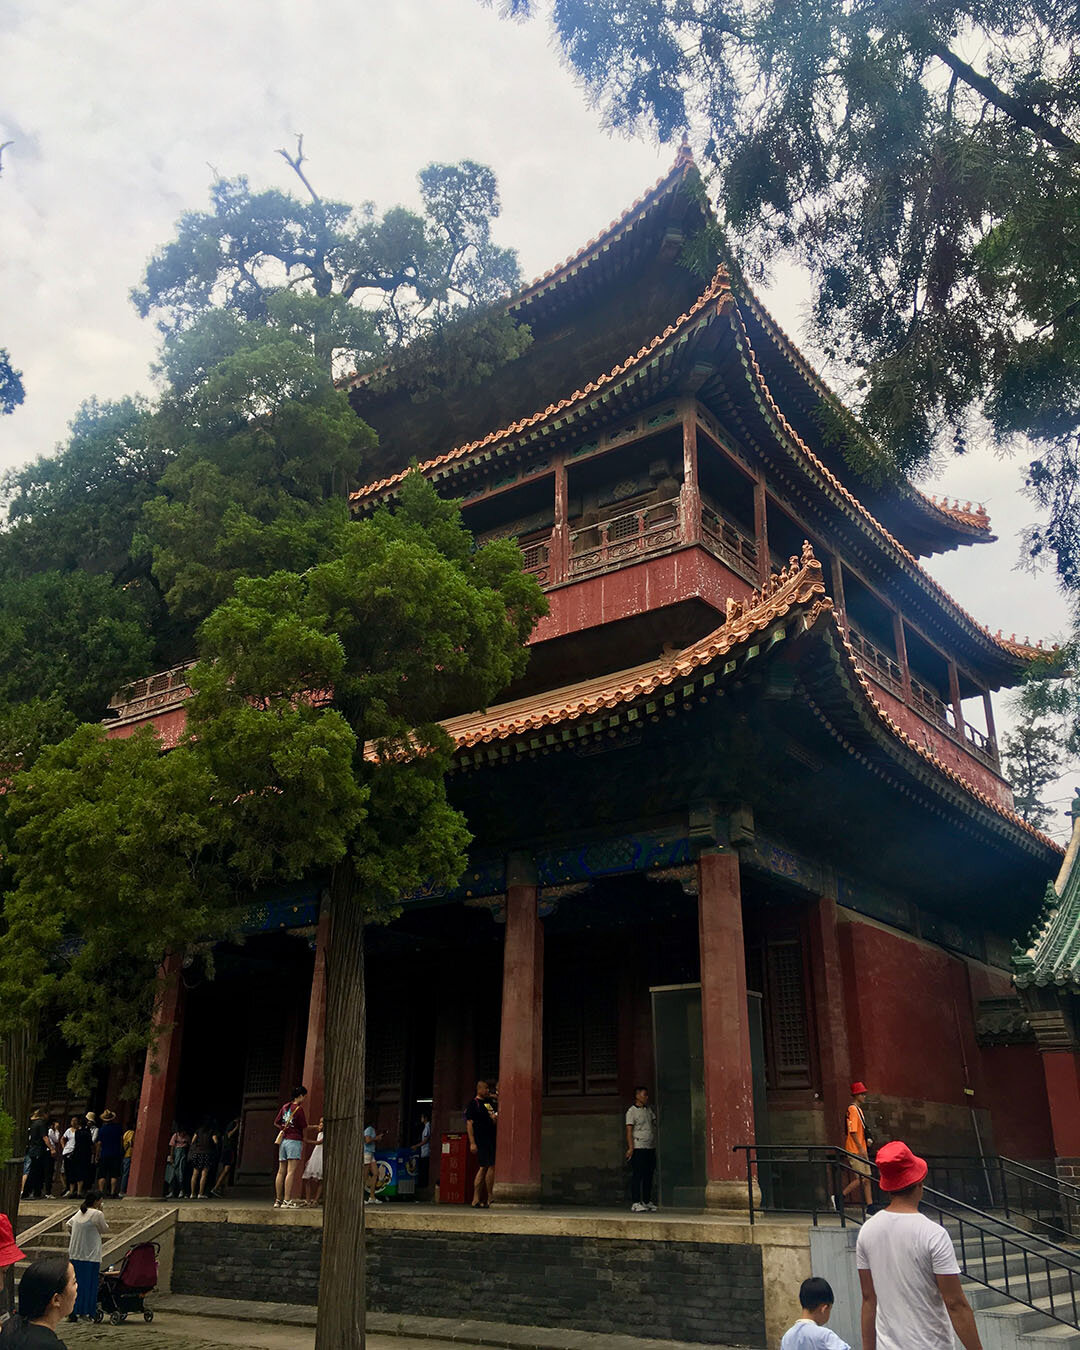 One of the many intricate and beautiful buildings within Confucius Park in Qufu